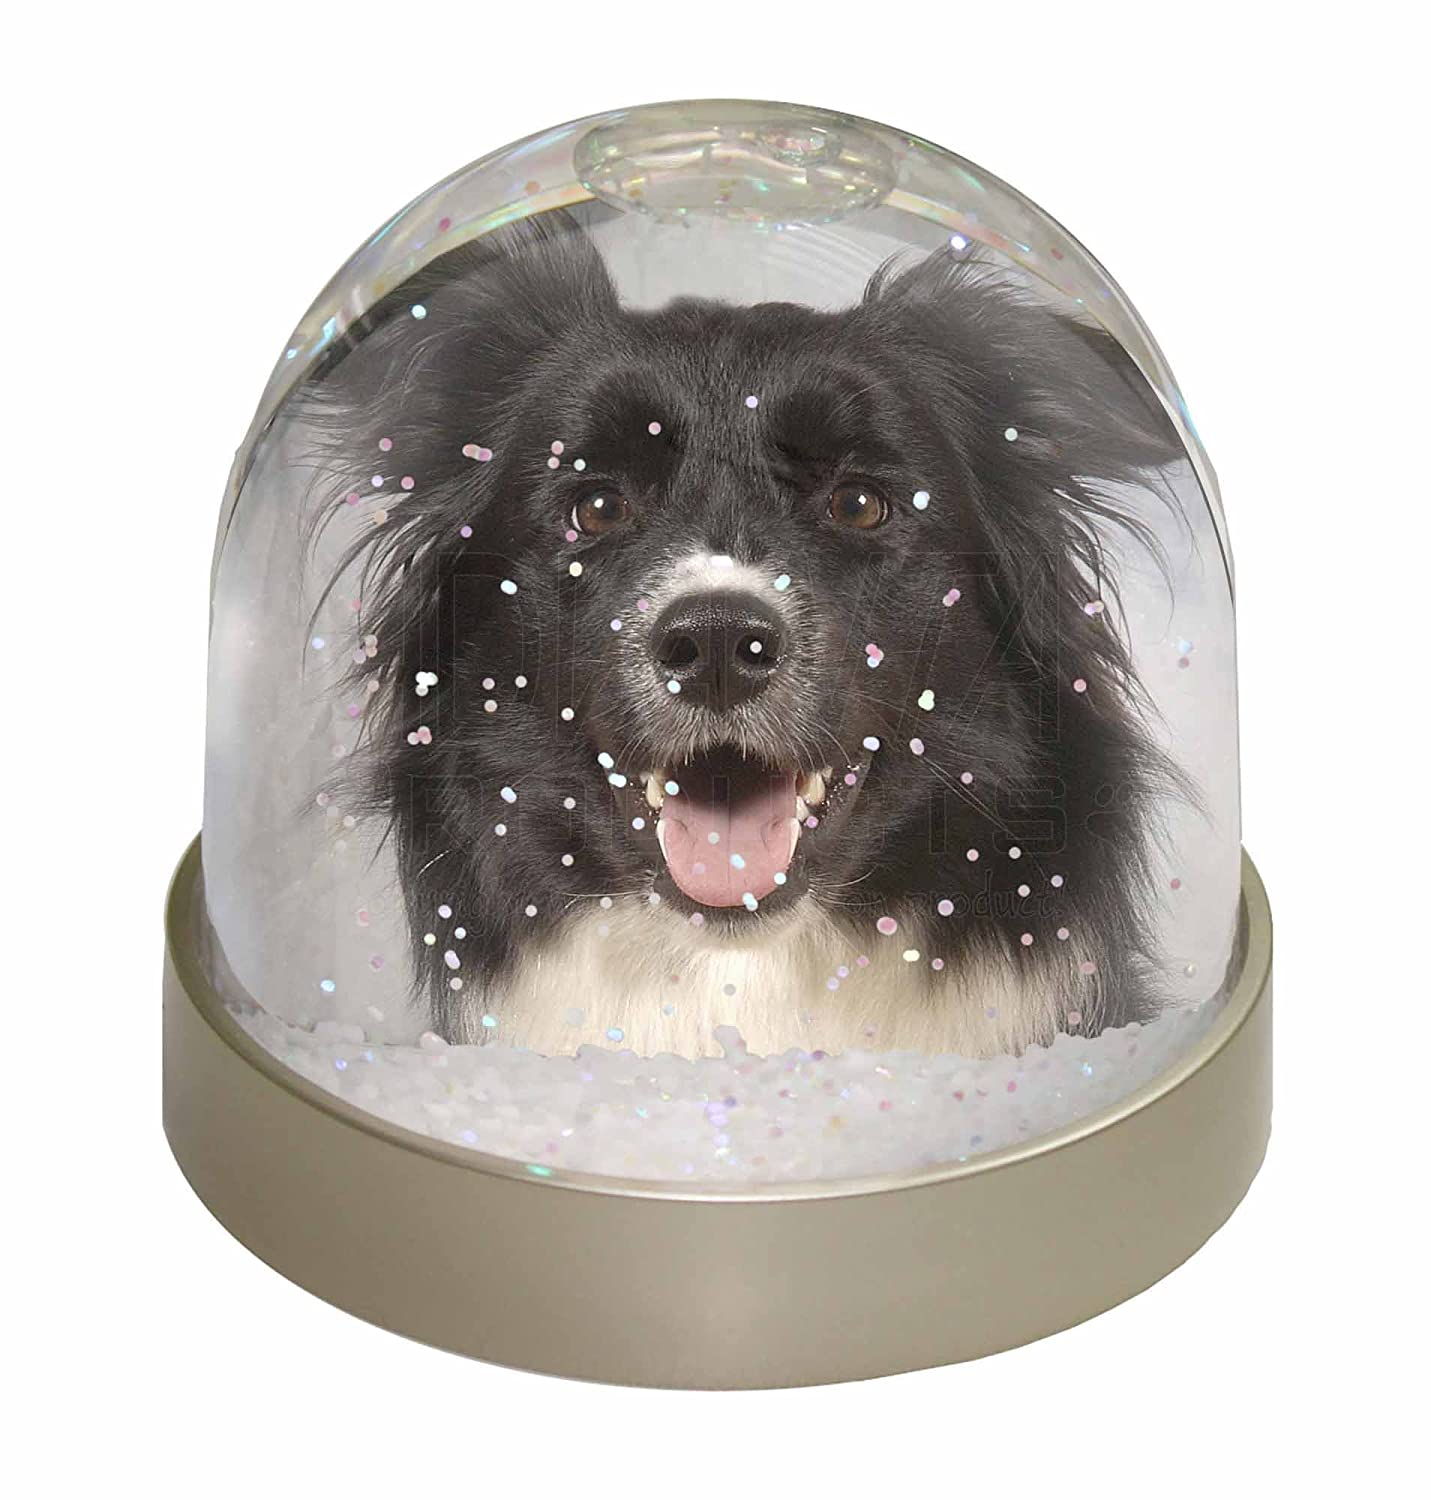 Advanta Border Collie Dog Snow Dome Globe Waterball Gift, Multi-Colour, 9.2 x 9.2 x 8 cm Advanta Products AD-BC30GL